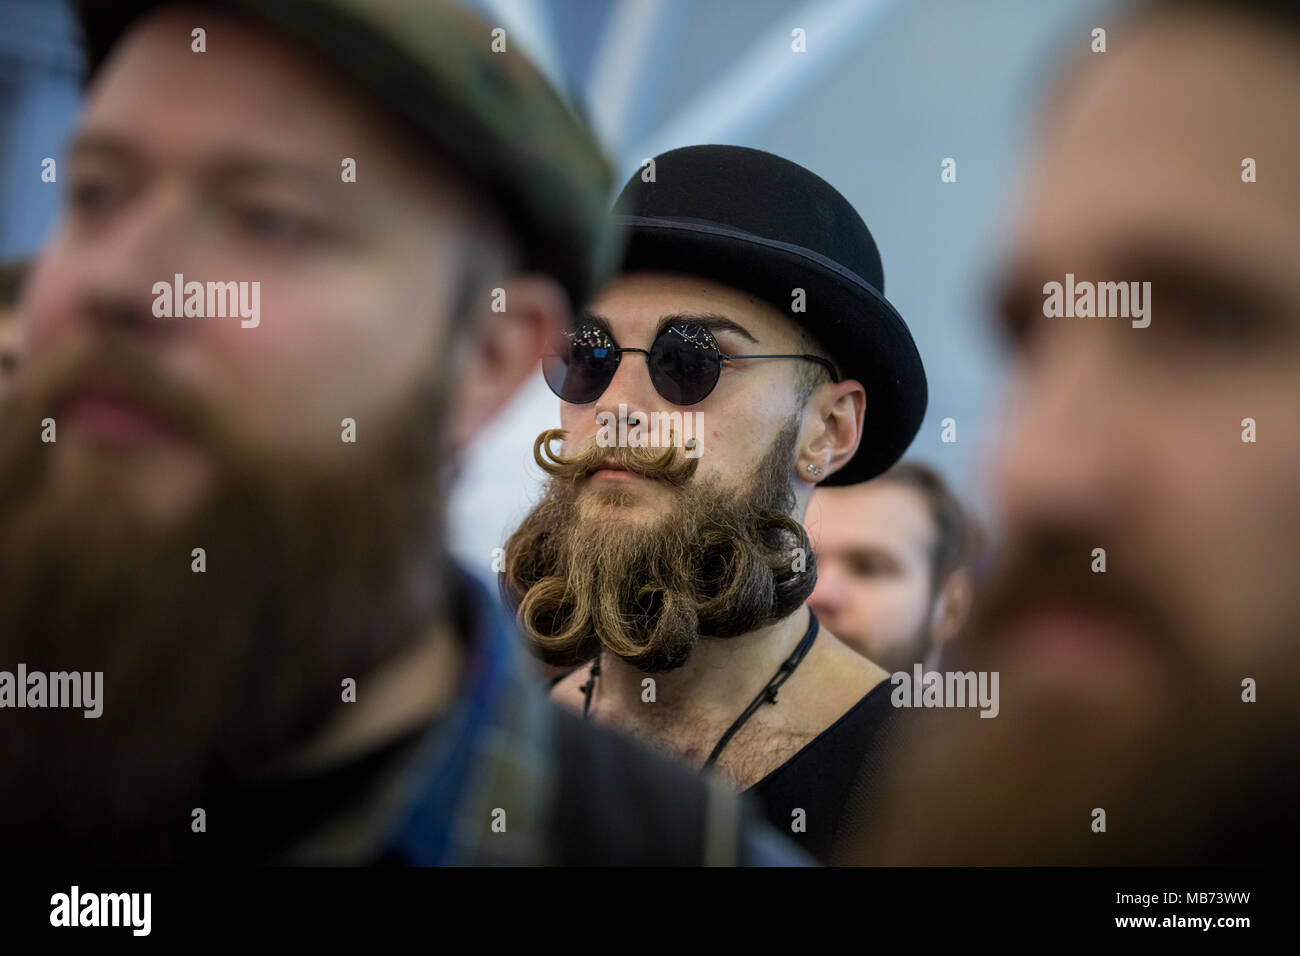 Moscow, Russia. 7th April, 2018. The 6th Annual Russian Beard & Moustache Championships held in Moscow, Russia Credit: Nikolay Vinokurov/Alamy Live News - Stock Image